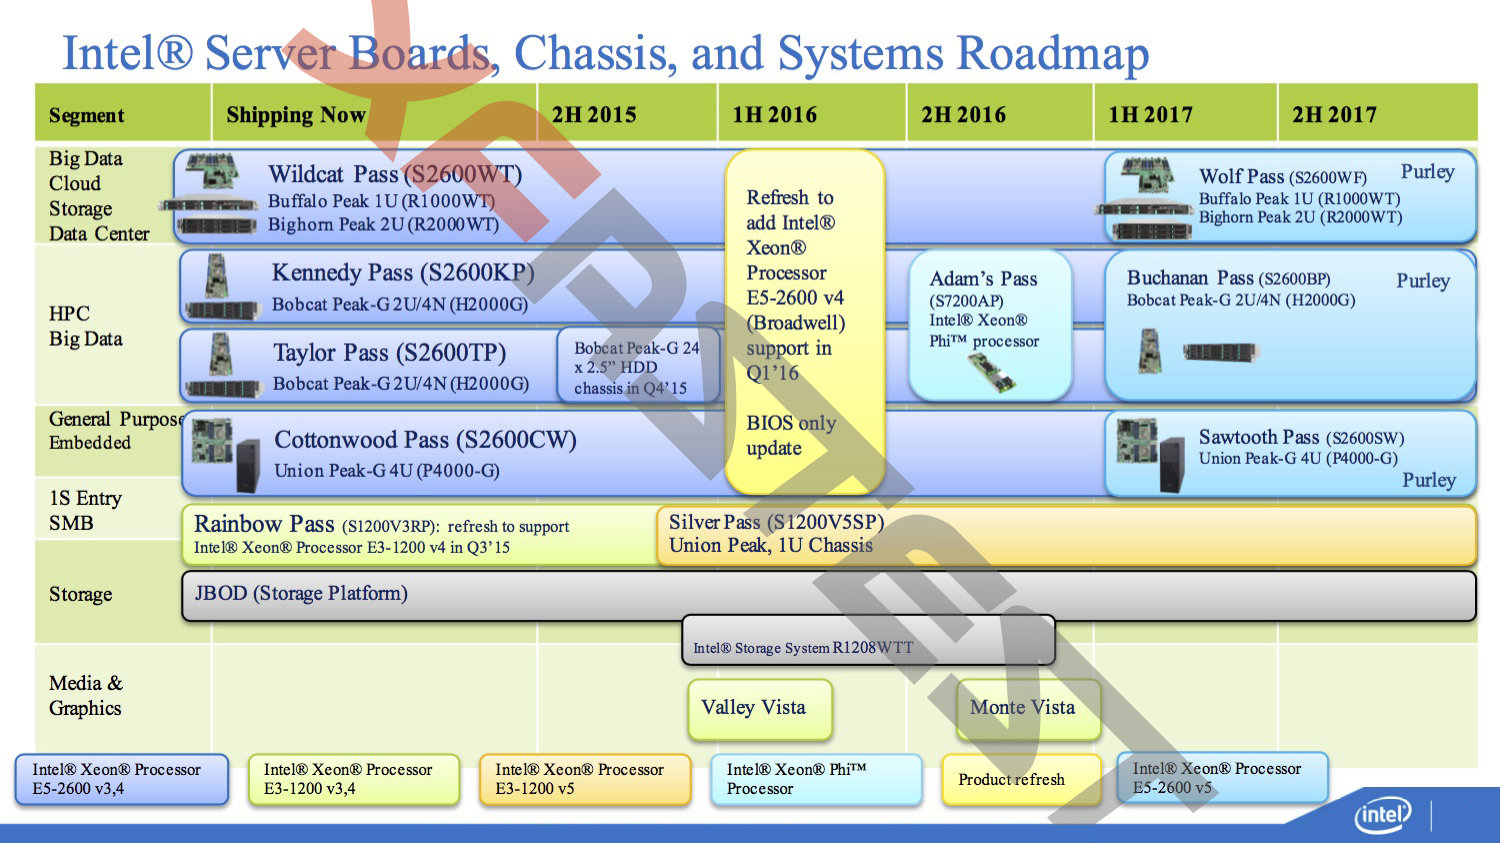 Intel Server Boards, Chassis, and Systems Roadmap